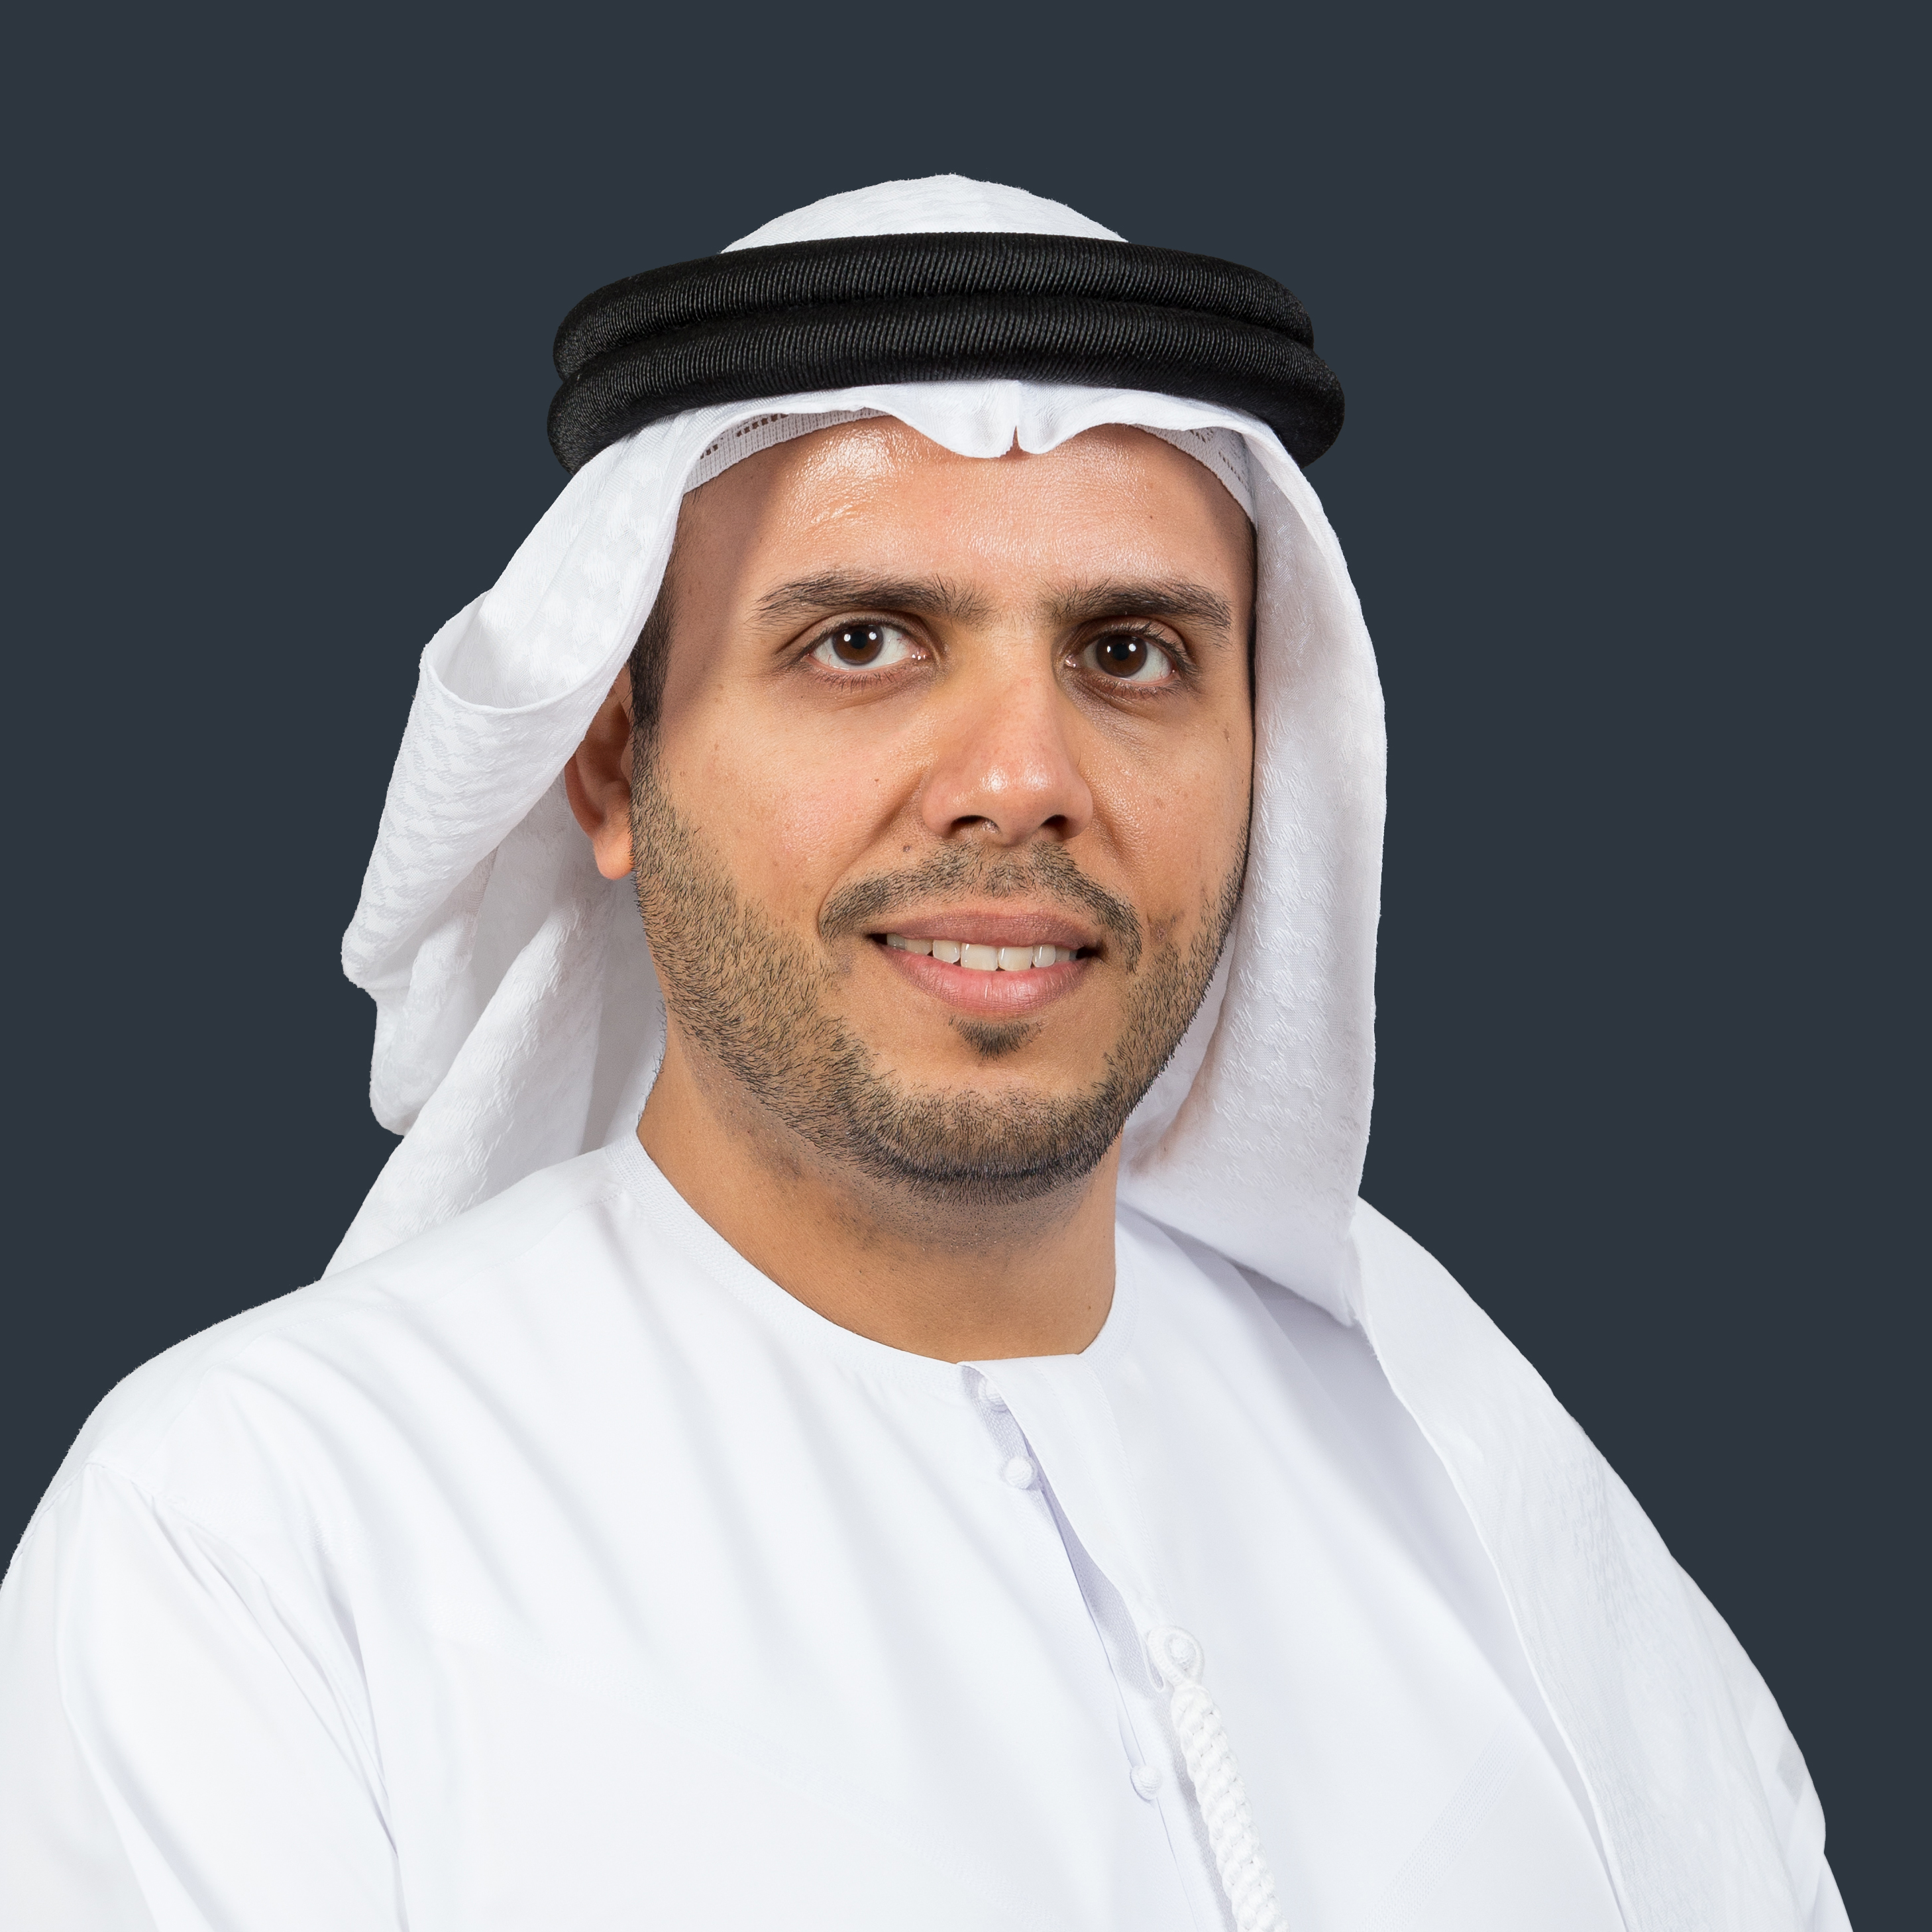 Dr. Mohamed Al Junaibi, Executive Director of Space Sector at UAE Space Agency